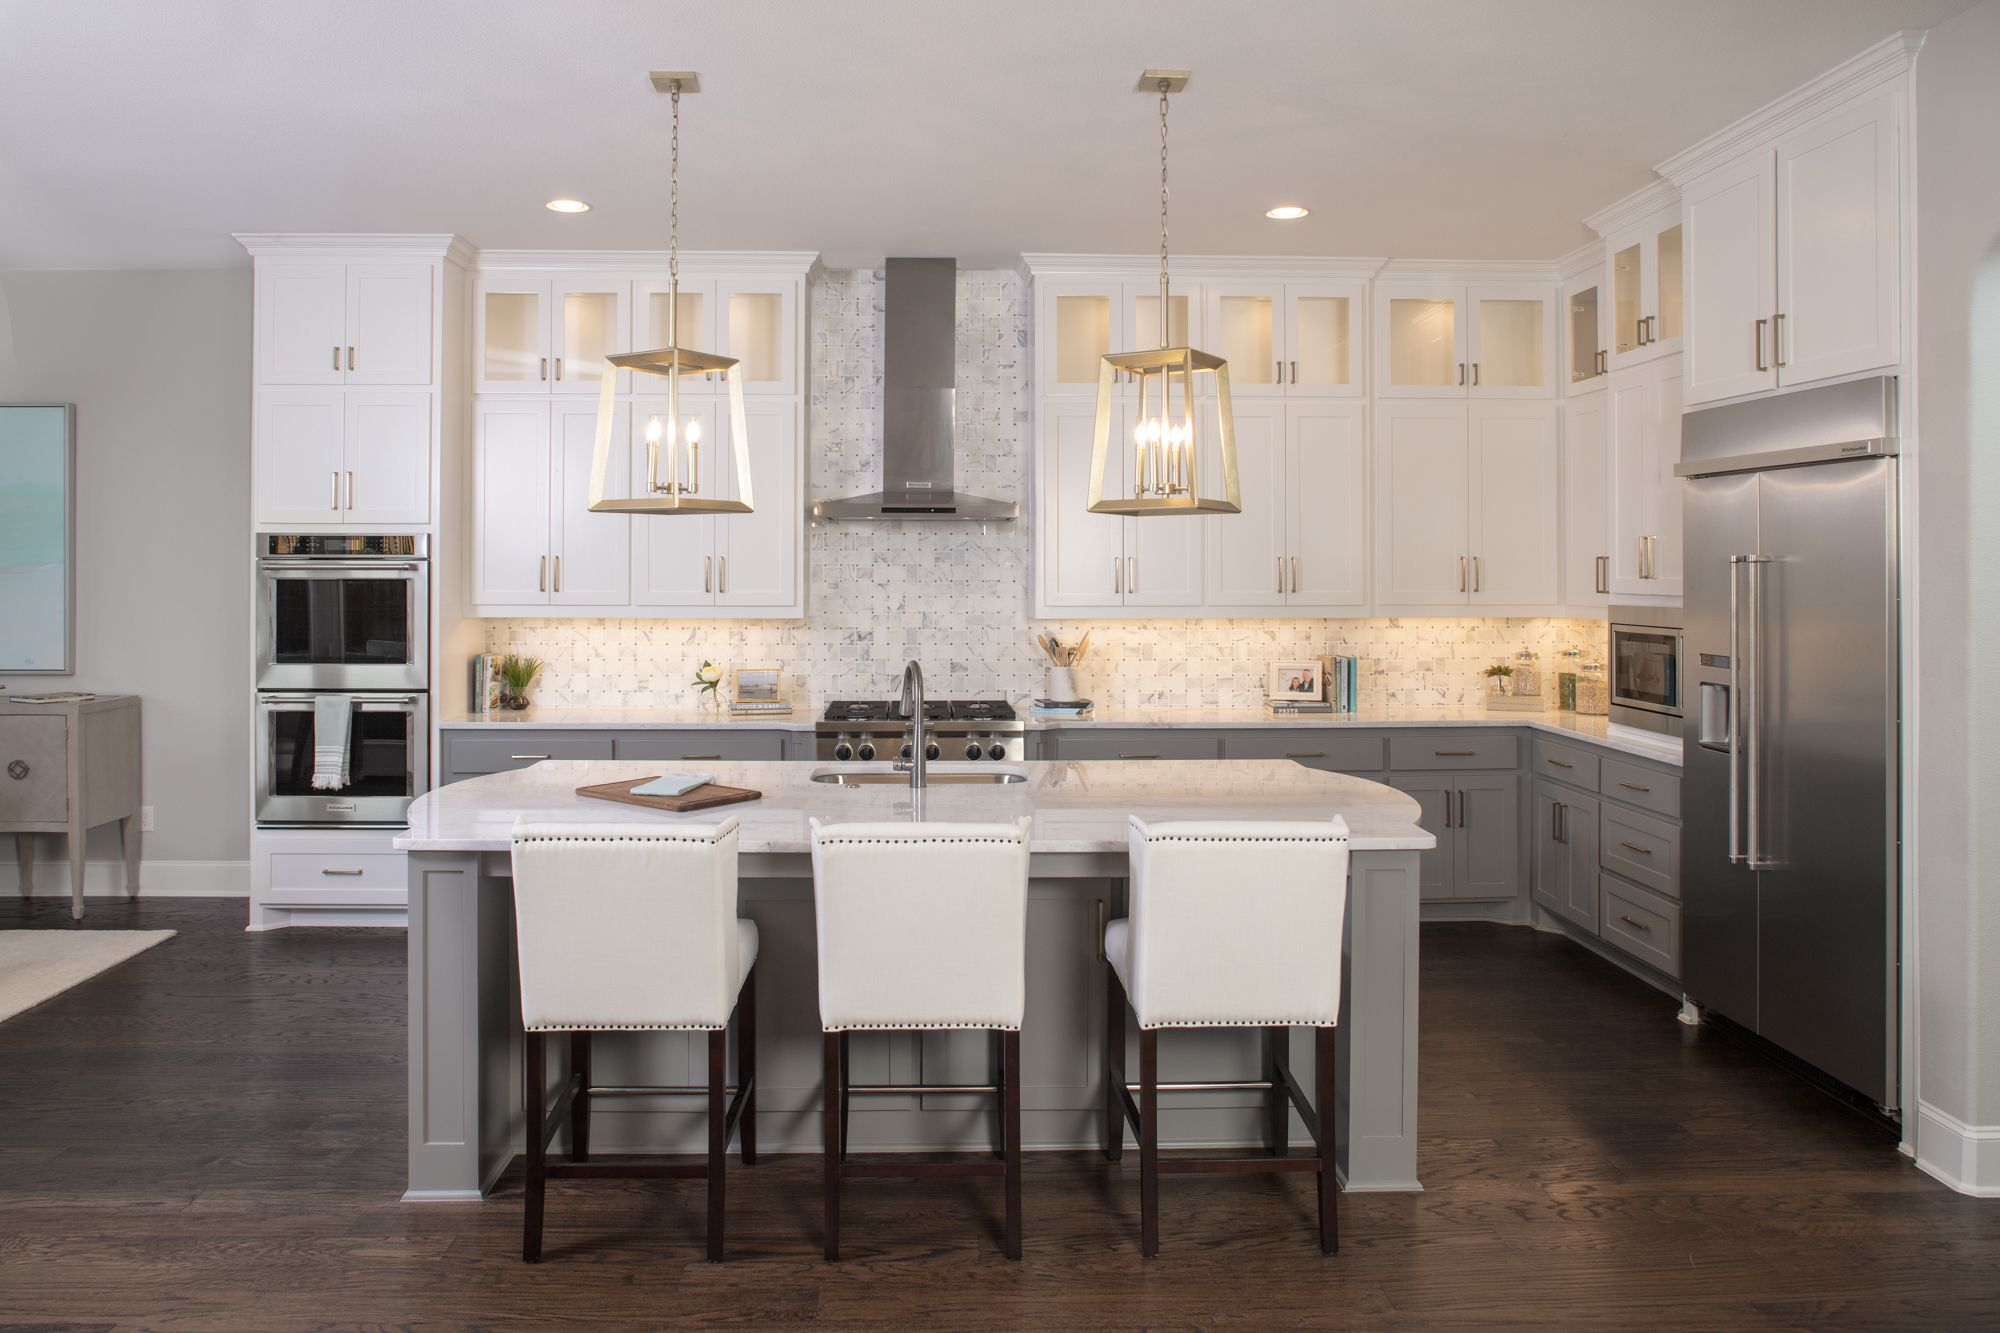 Kitchen featured in the B807 By BelclaireHomes in Dallas, TX